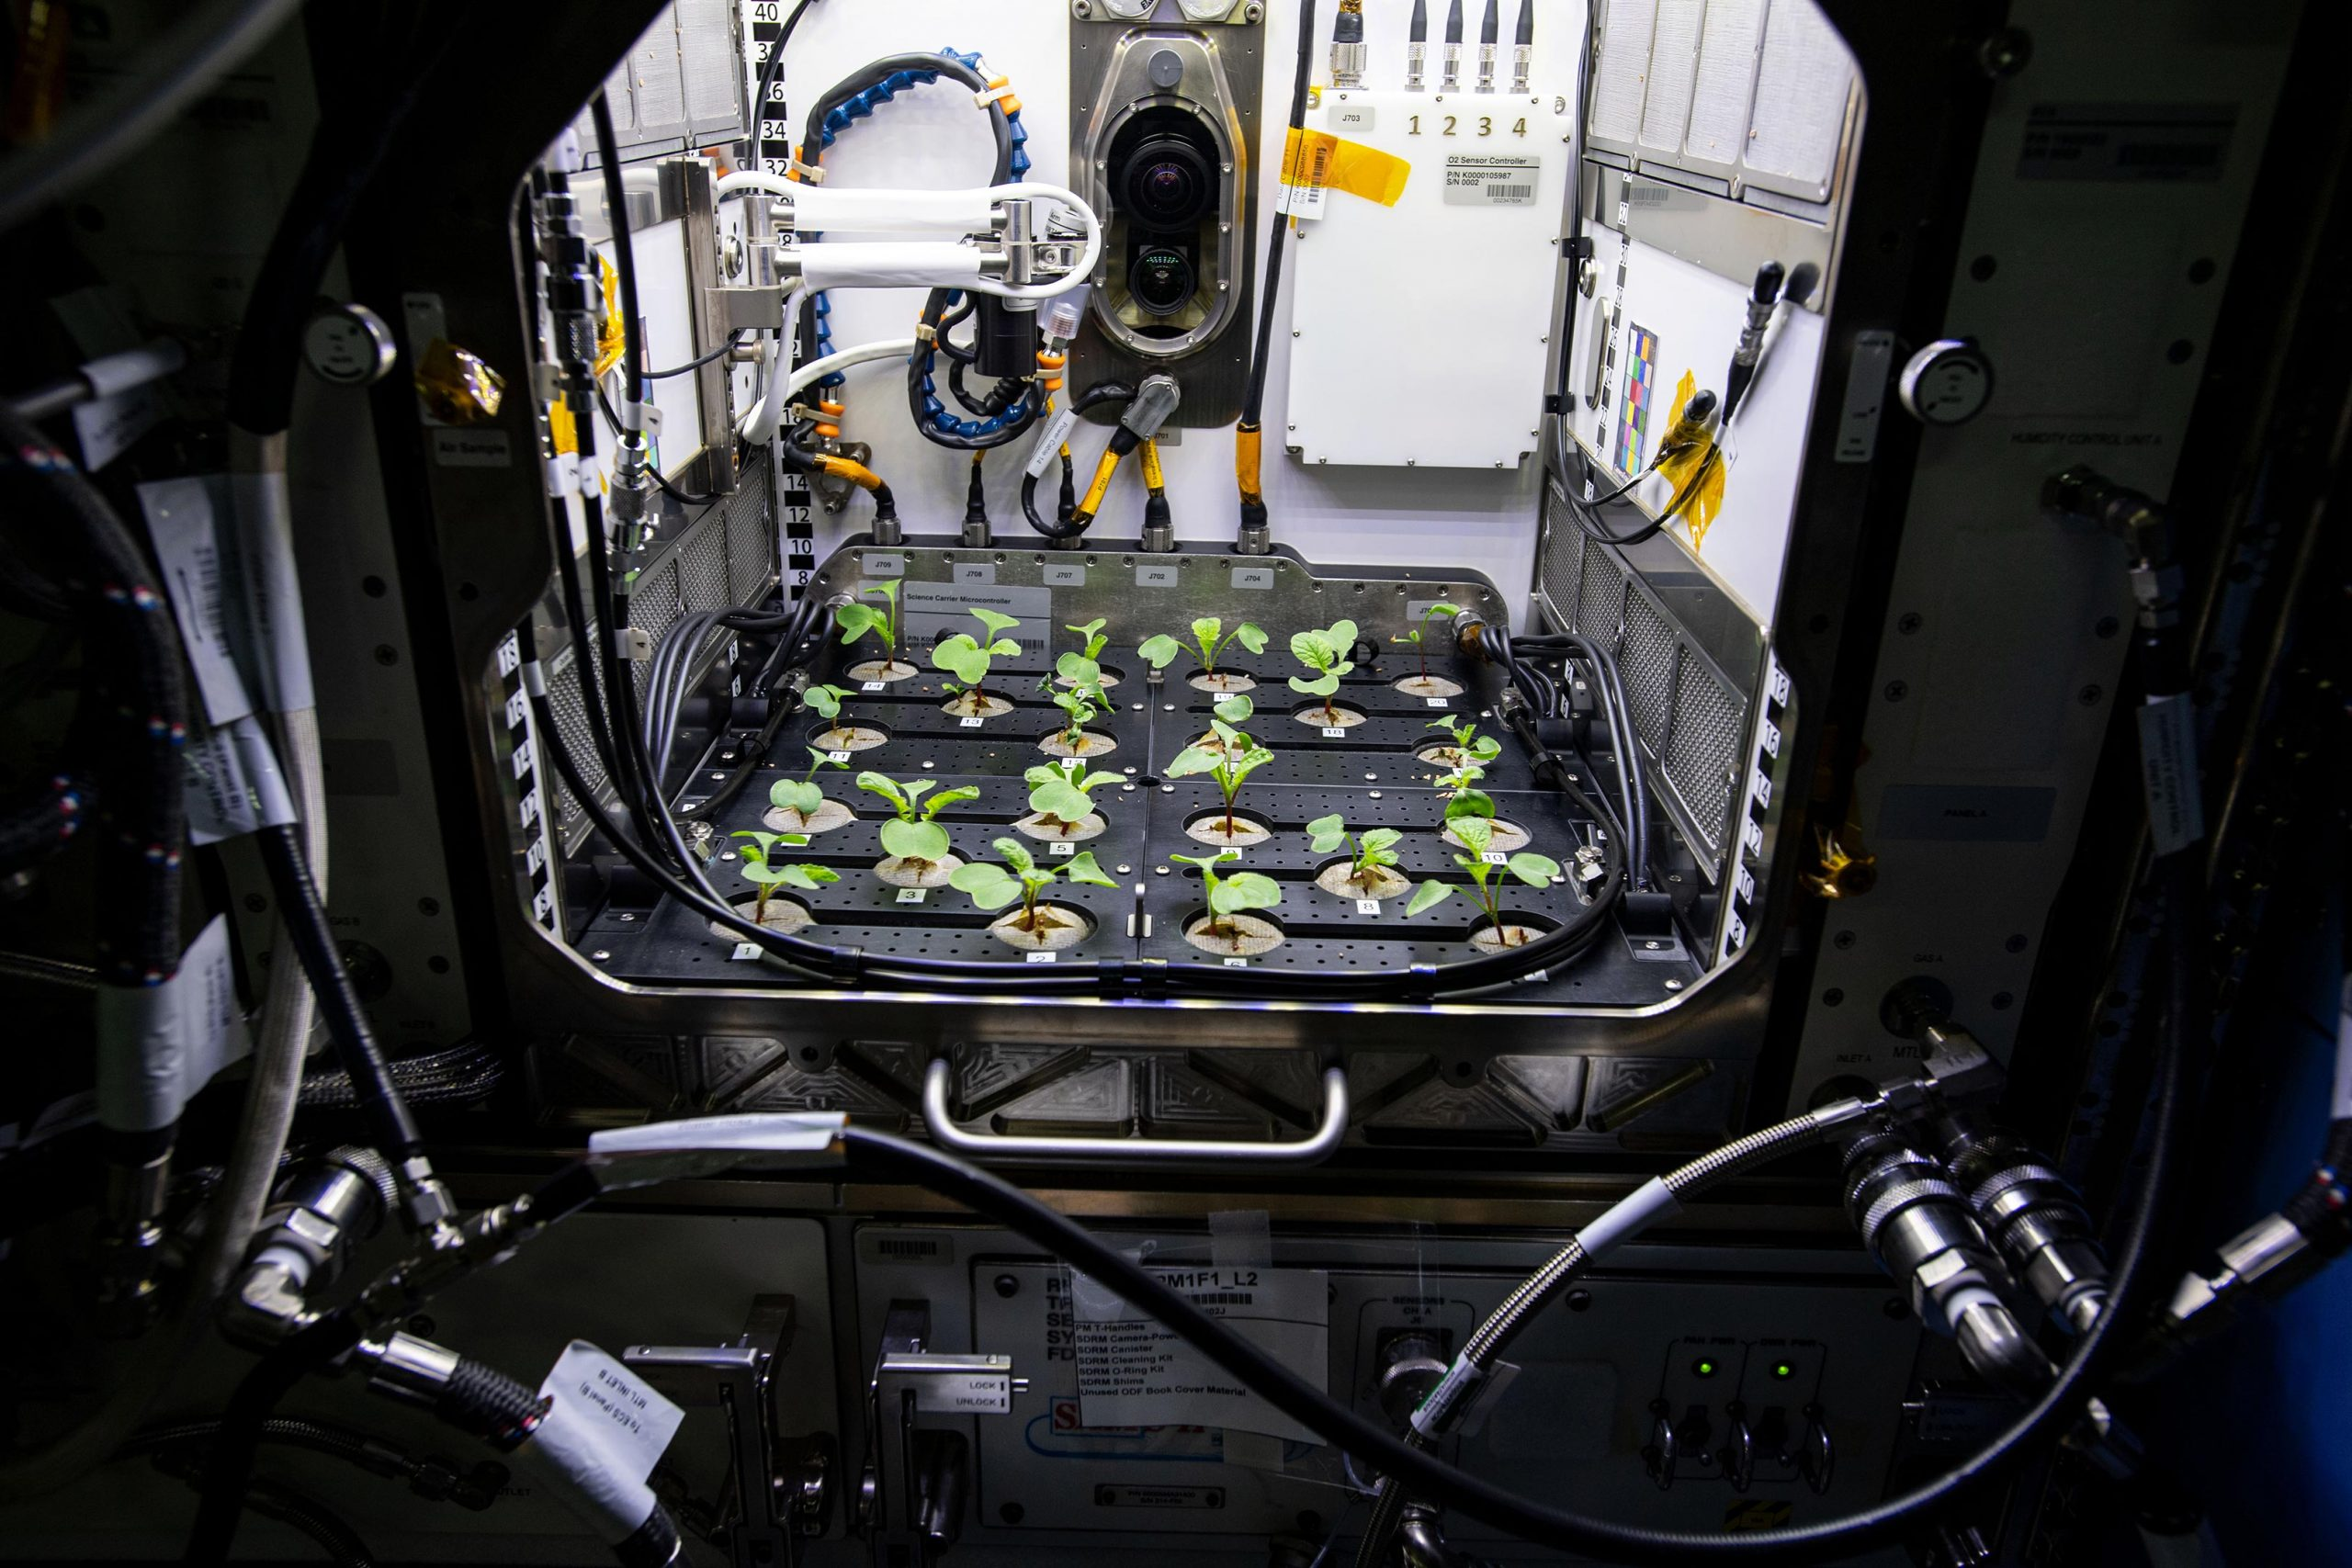 Astronauts Grow Radishes in Second Advanced Plant Habitat Experiment in Space - SciTechDaily